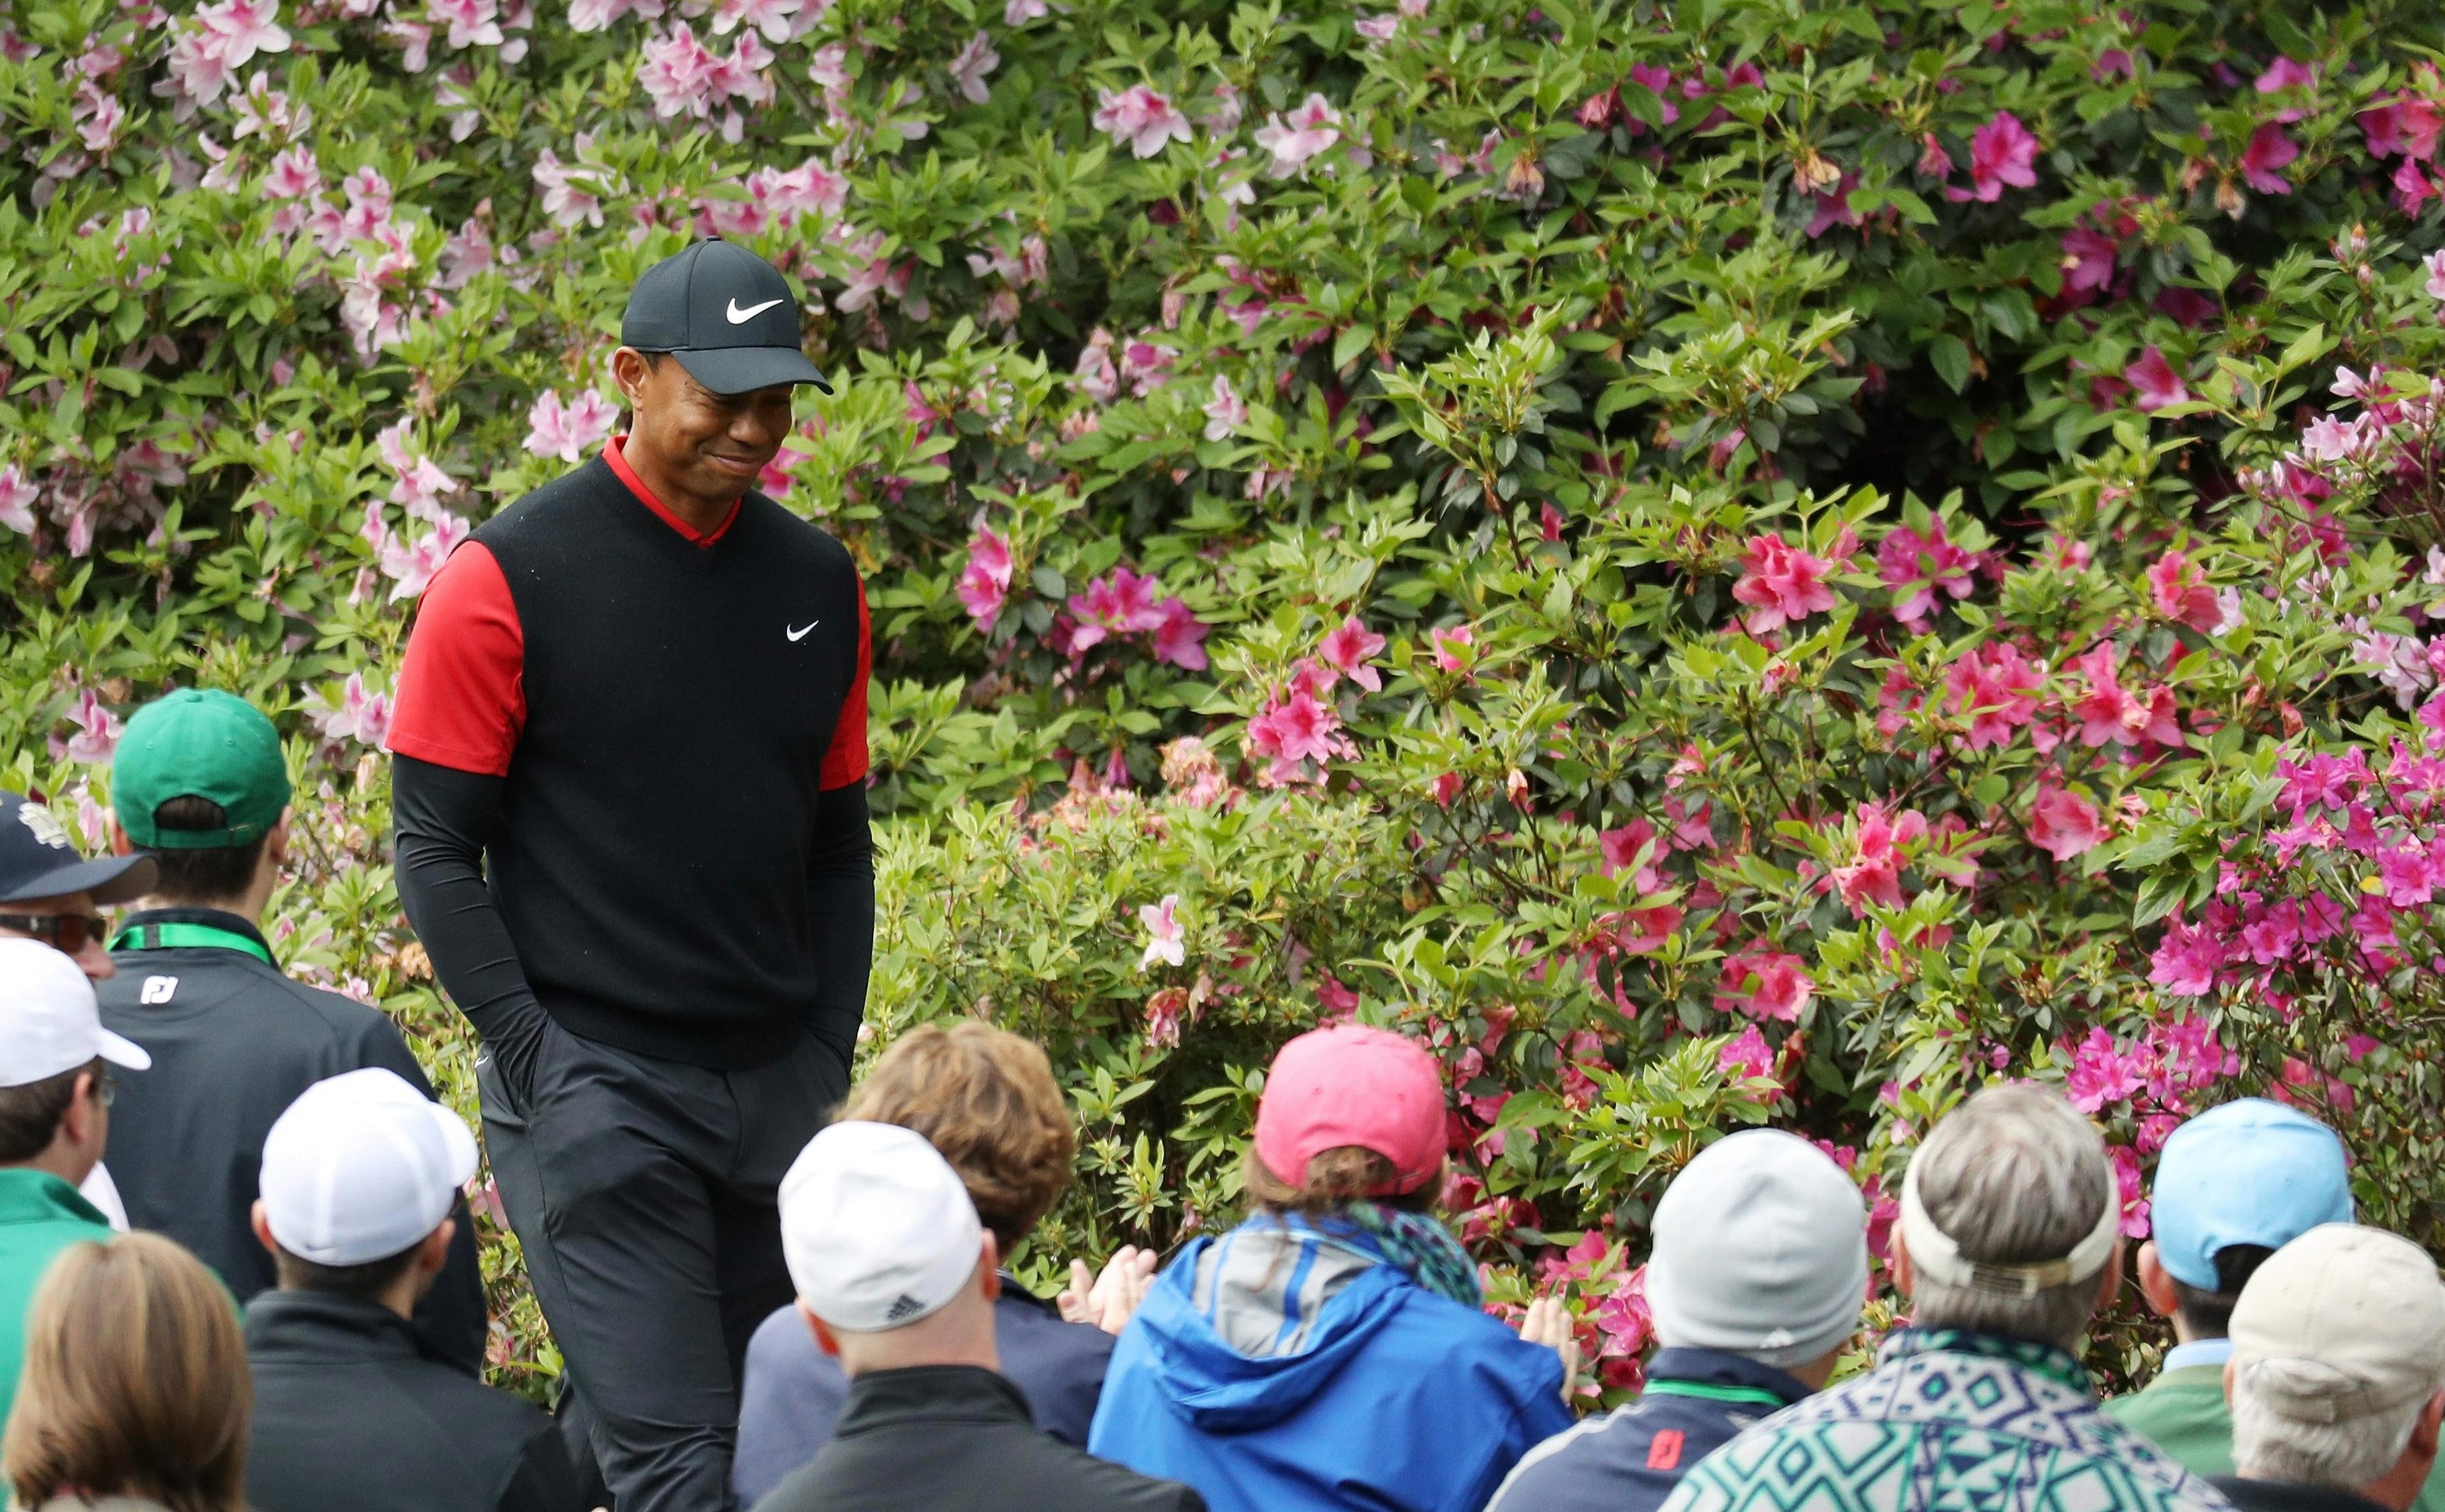 Woods finished tied for 32nd at Aprils Masters, ending his four rounds with a final score of 3 under par